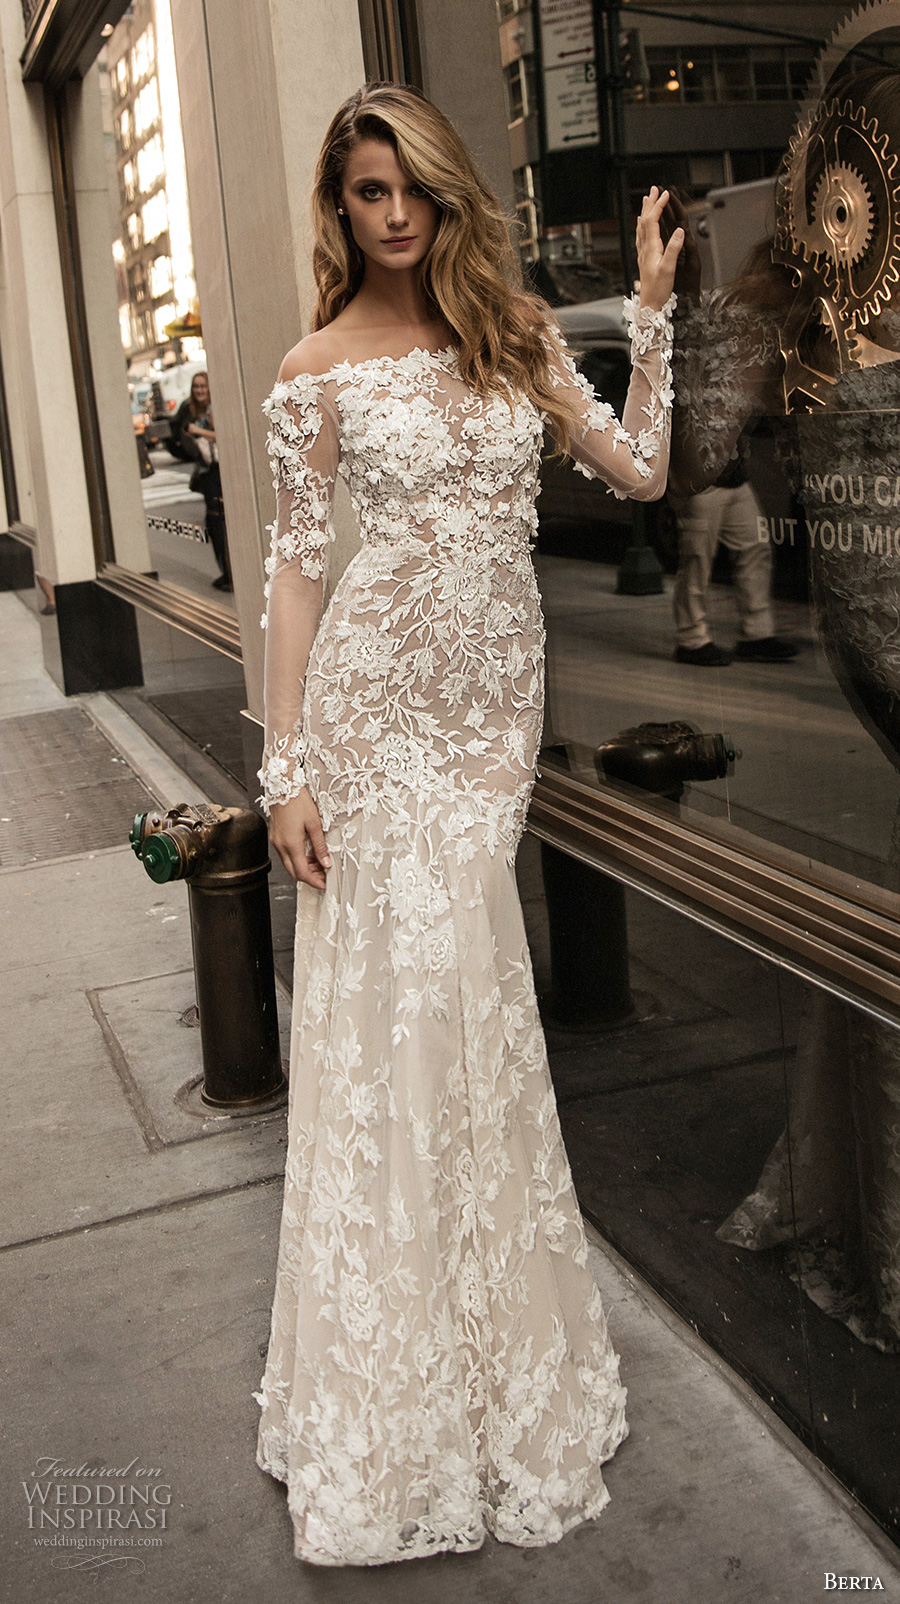 Berta fall 2017 wedding dresses wedding inspirasi for Wedding dresses with sleeves 2017